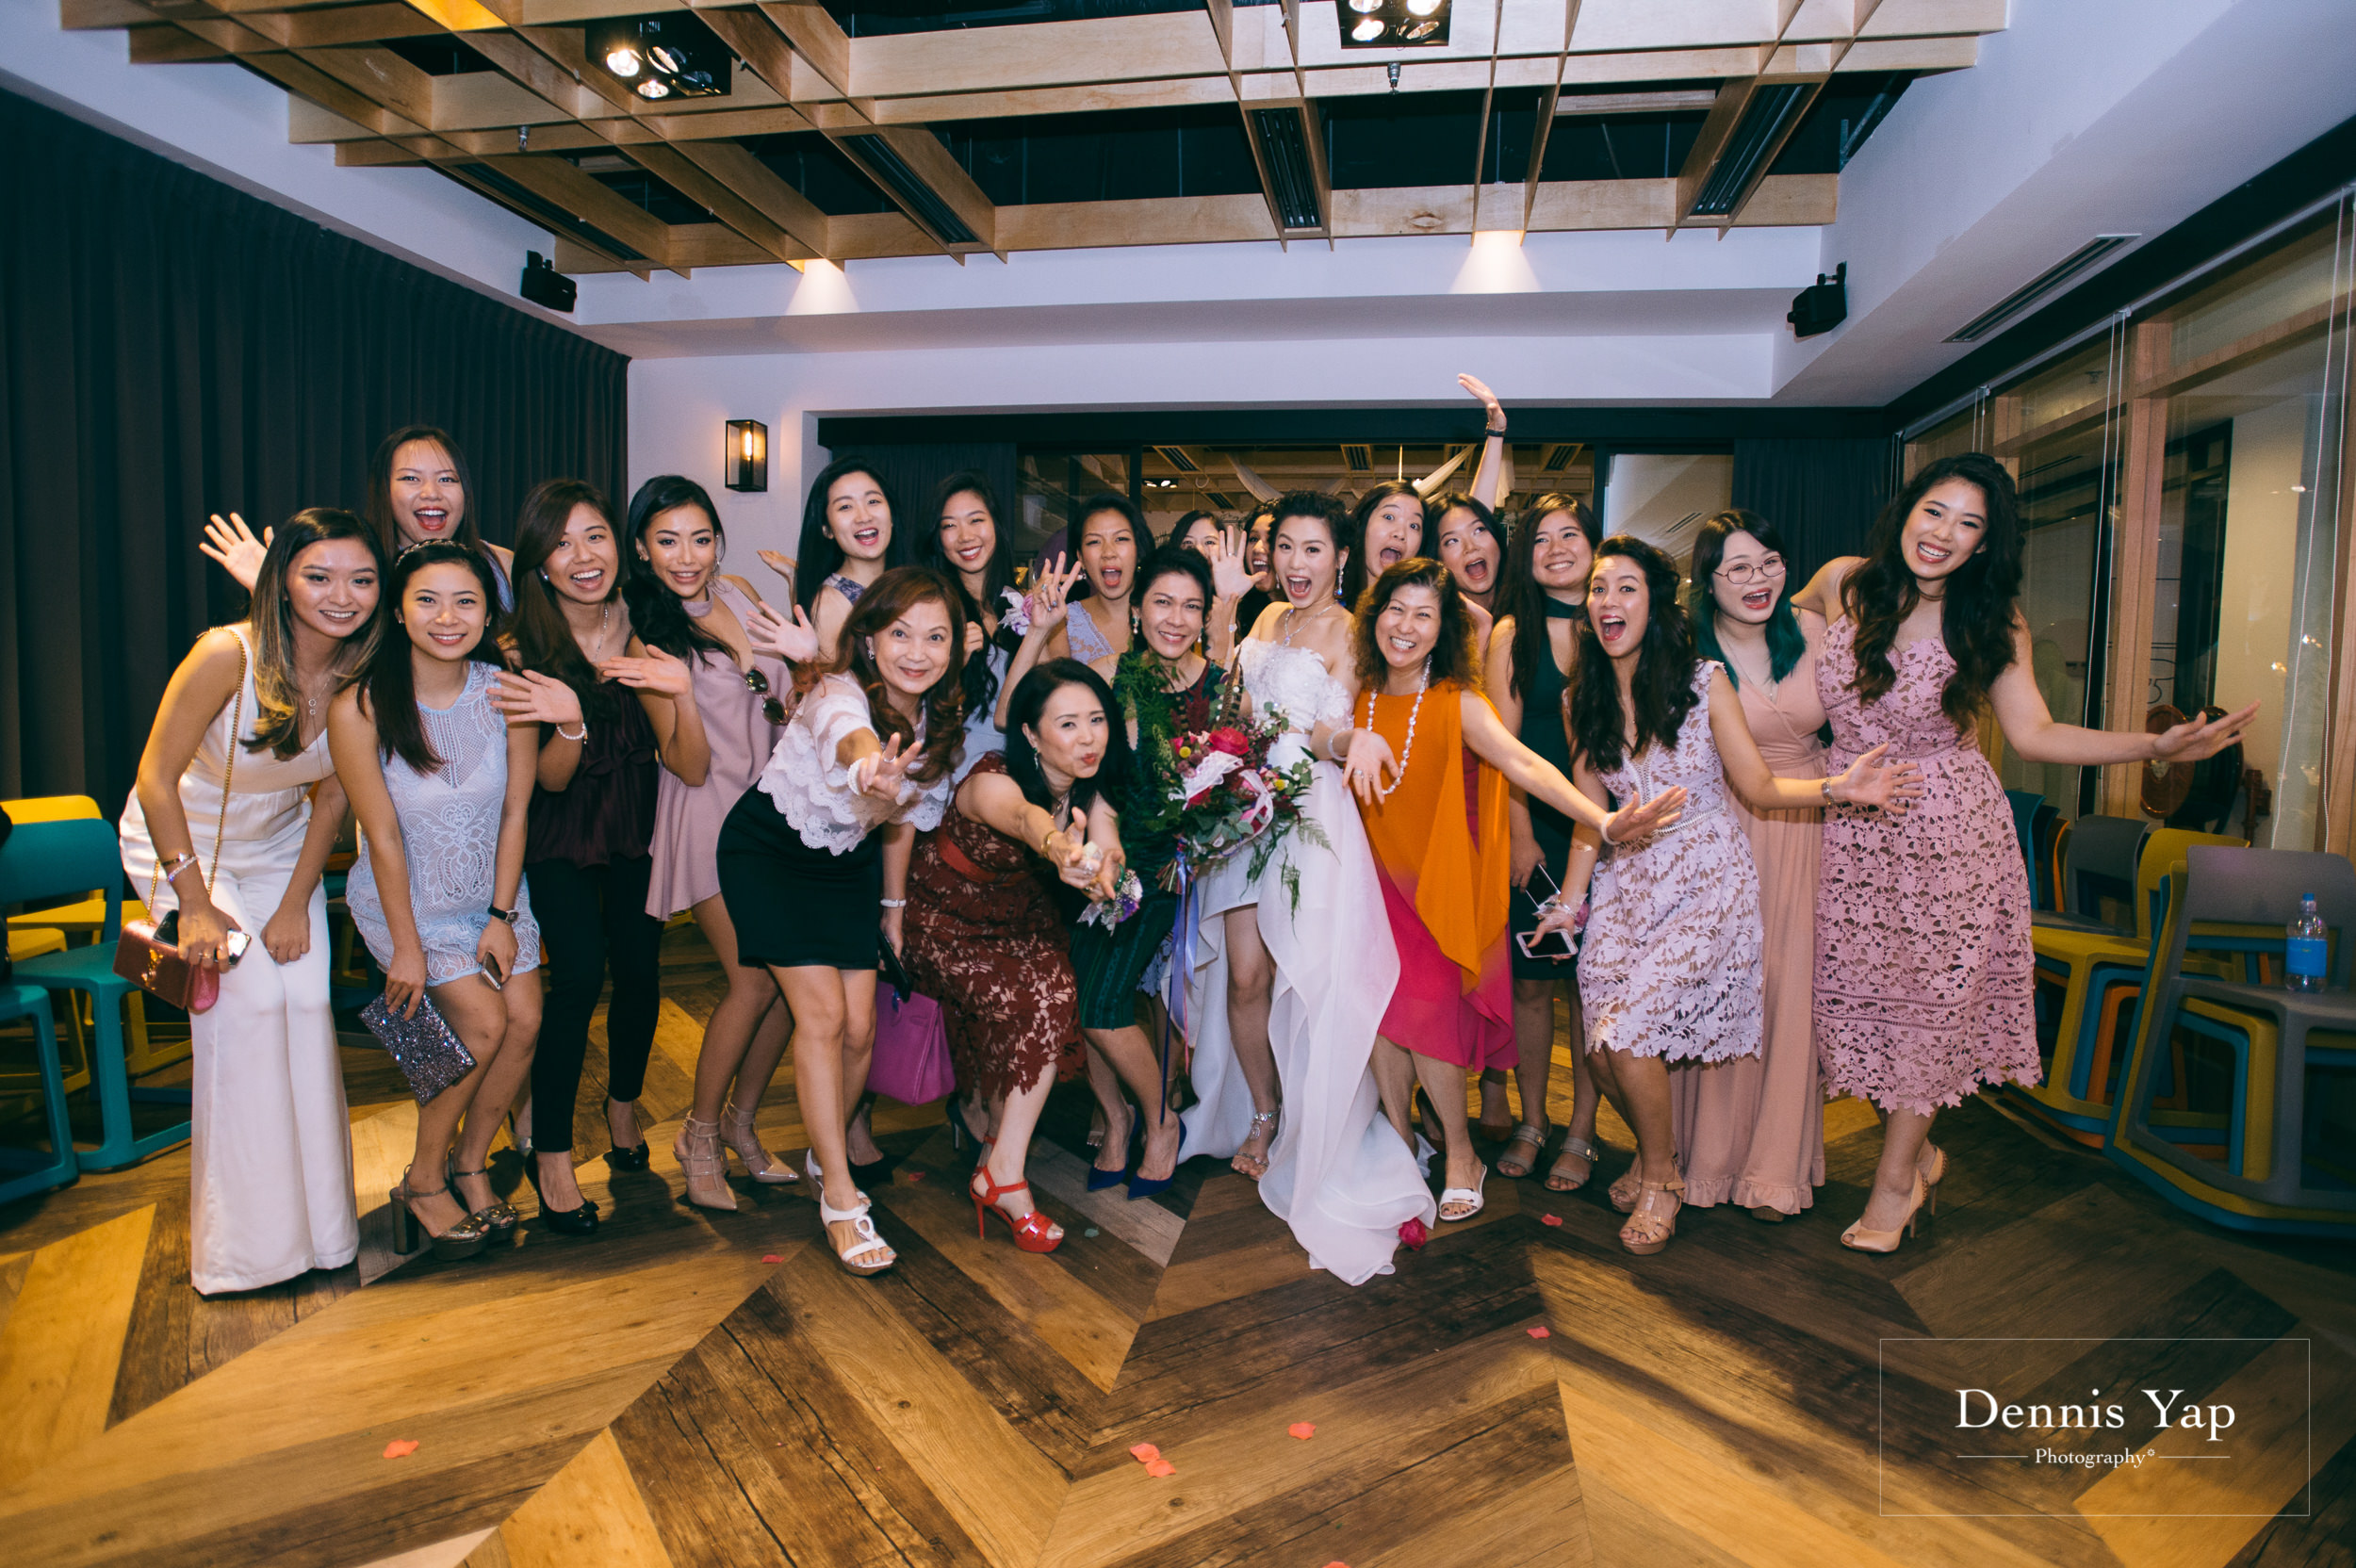 ser siang sze liang rom registration of marriage KL journal hotel dennis yap photography-33.jpg